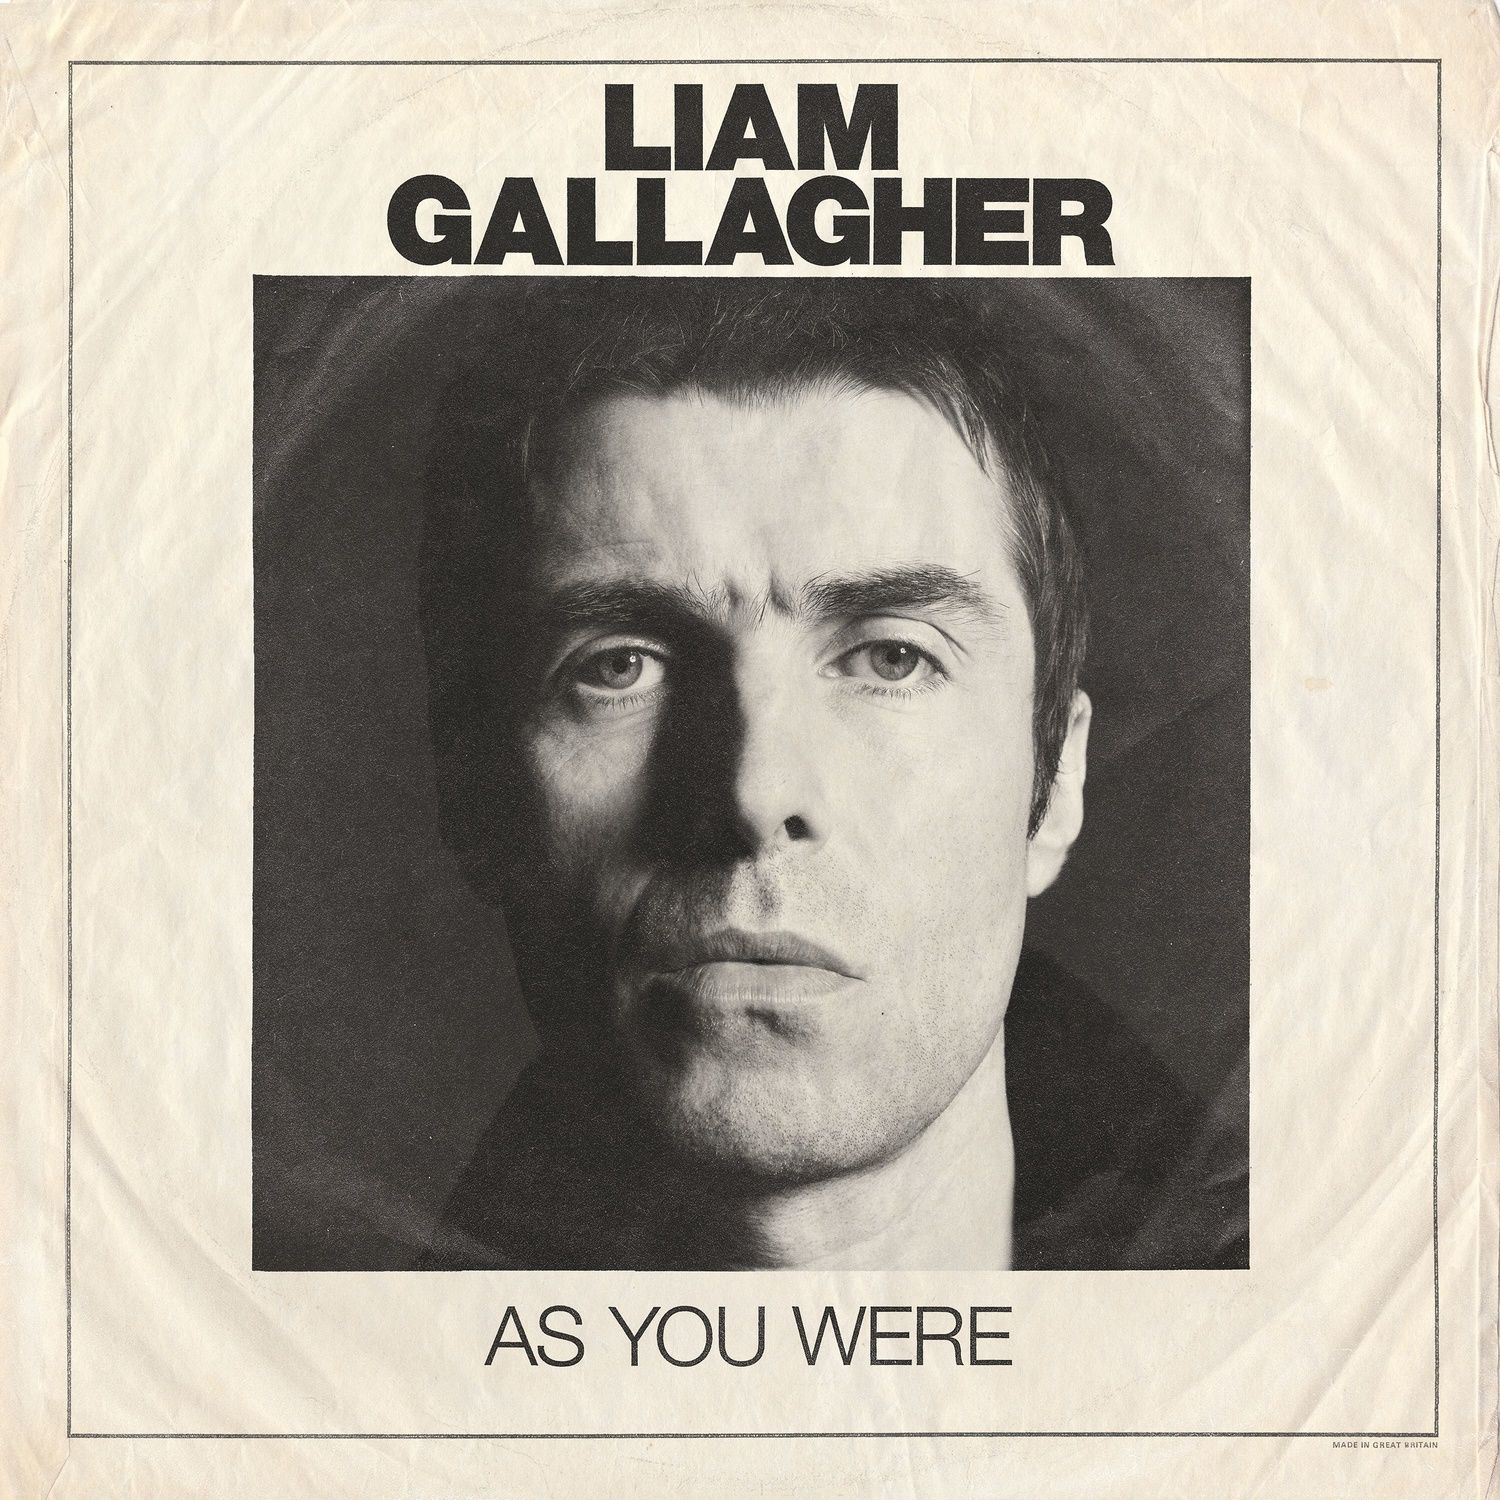 Liam Gallagher - As You Were album cover